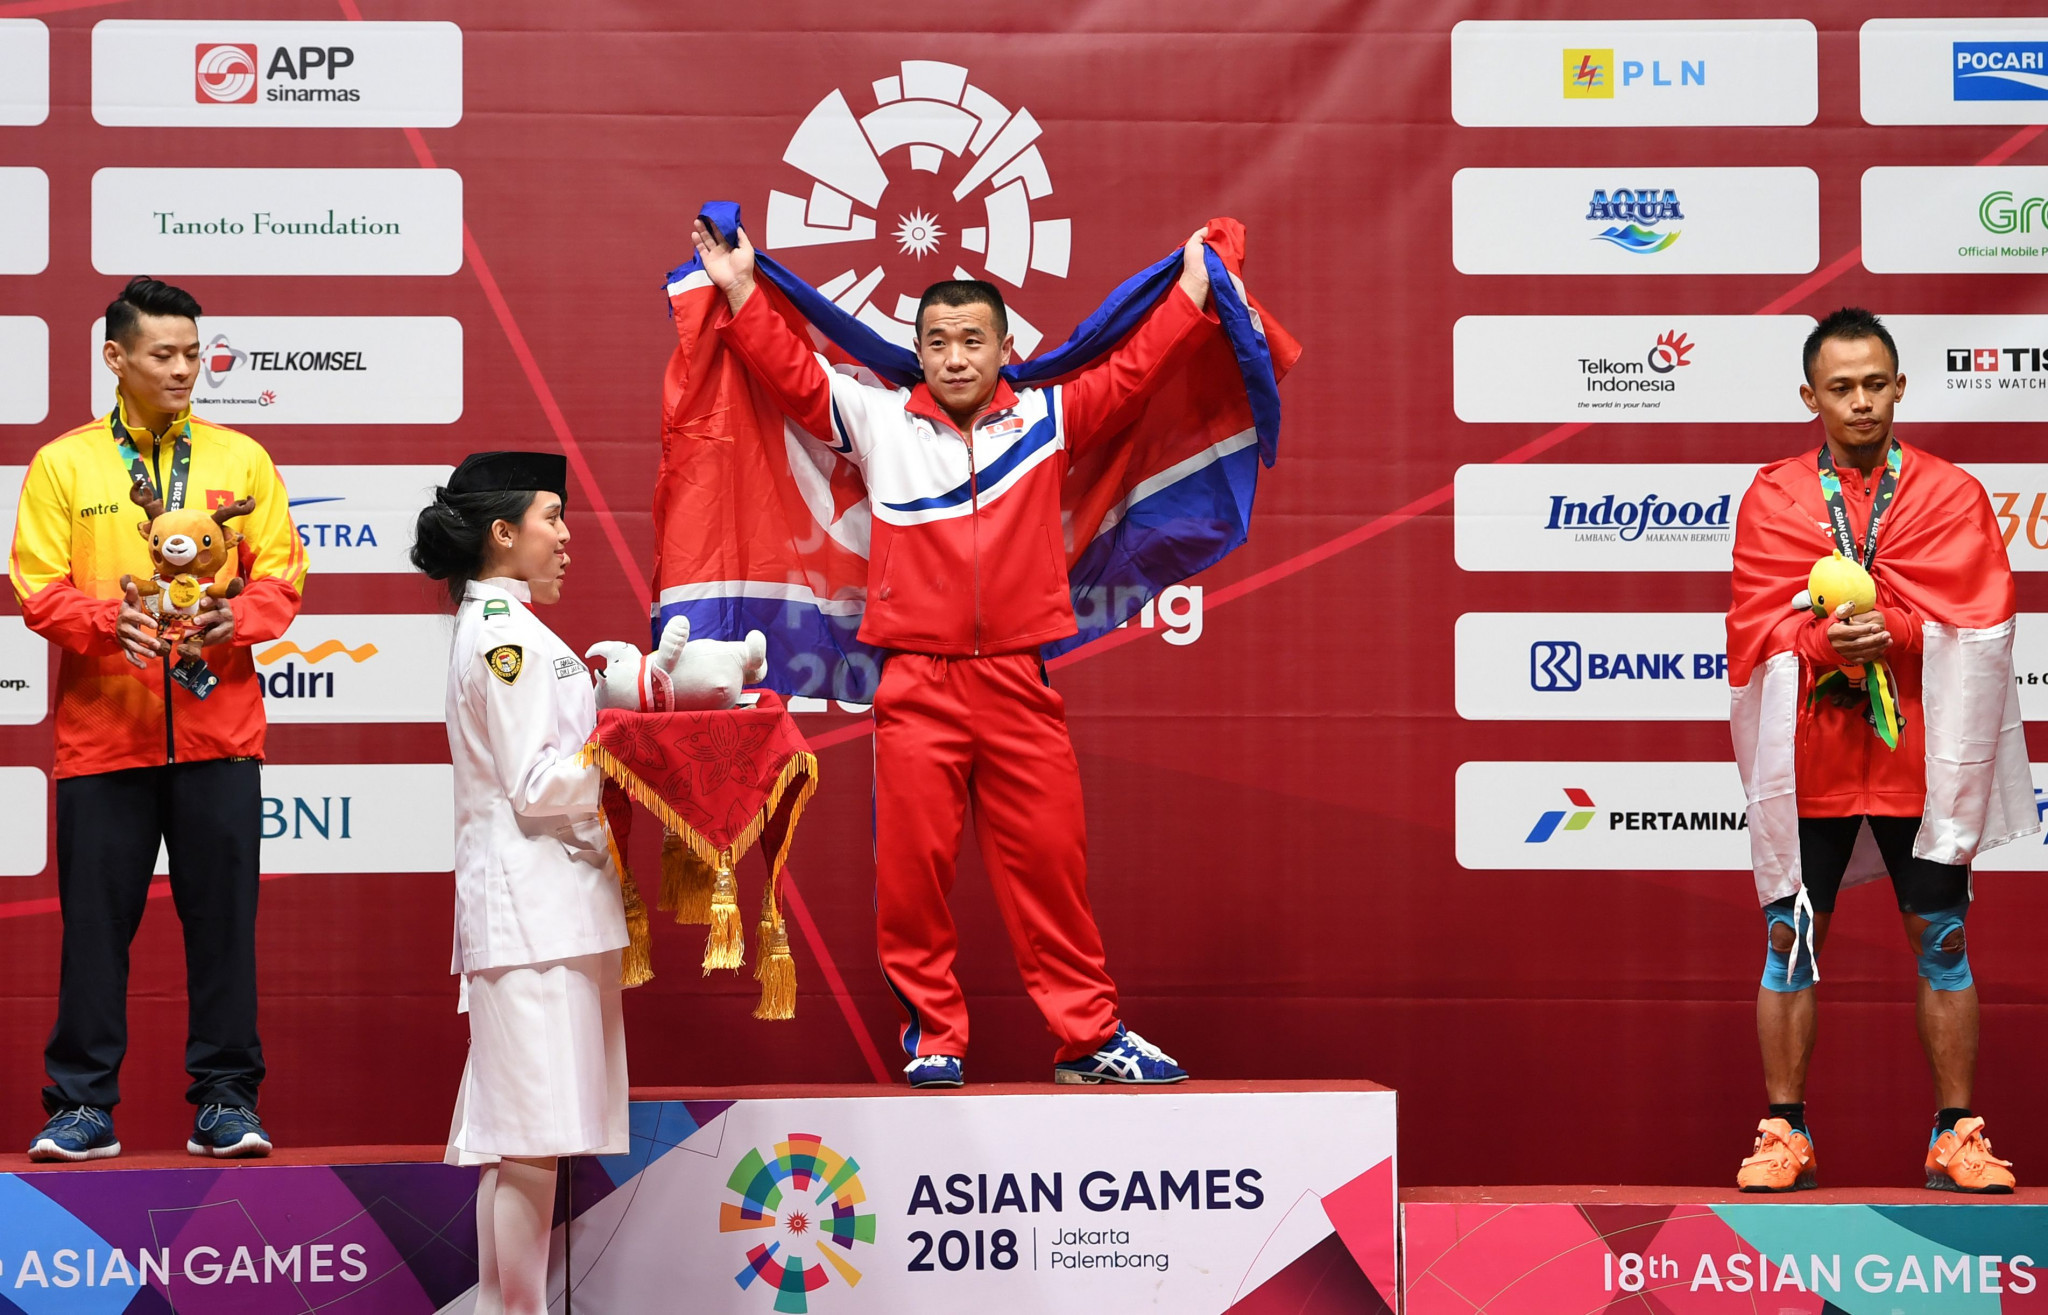 London 2012 Olympic champion Om Yun Chol won the men's 56 kilograms gold medal as North Korea dominated the first day of weightlifting competition at the 2018 Asian Games in Jakarta and Palembang ©Getty Images